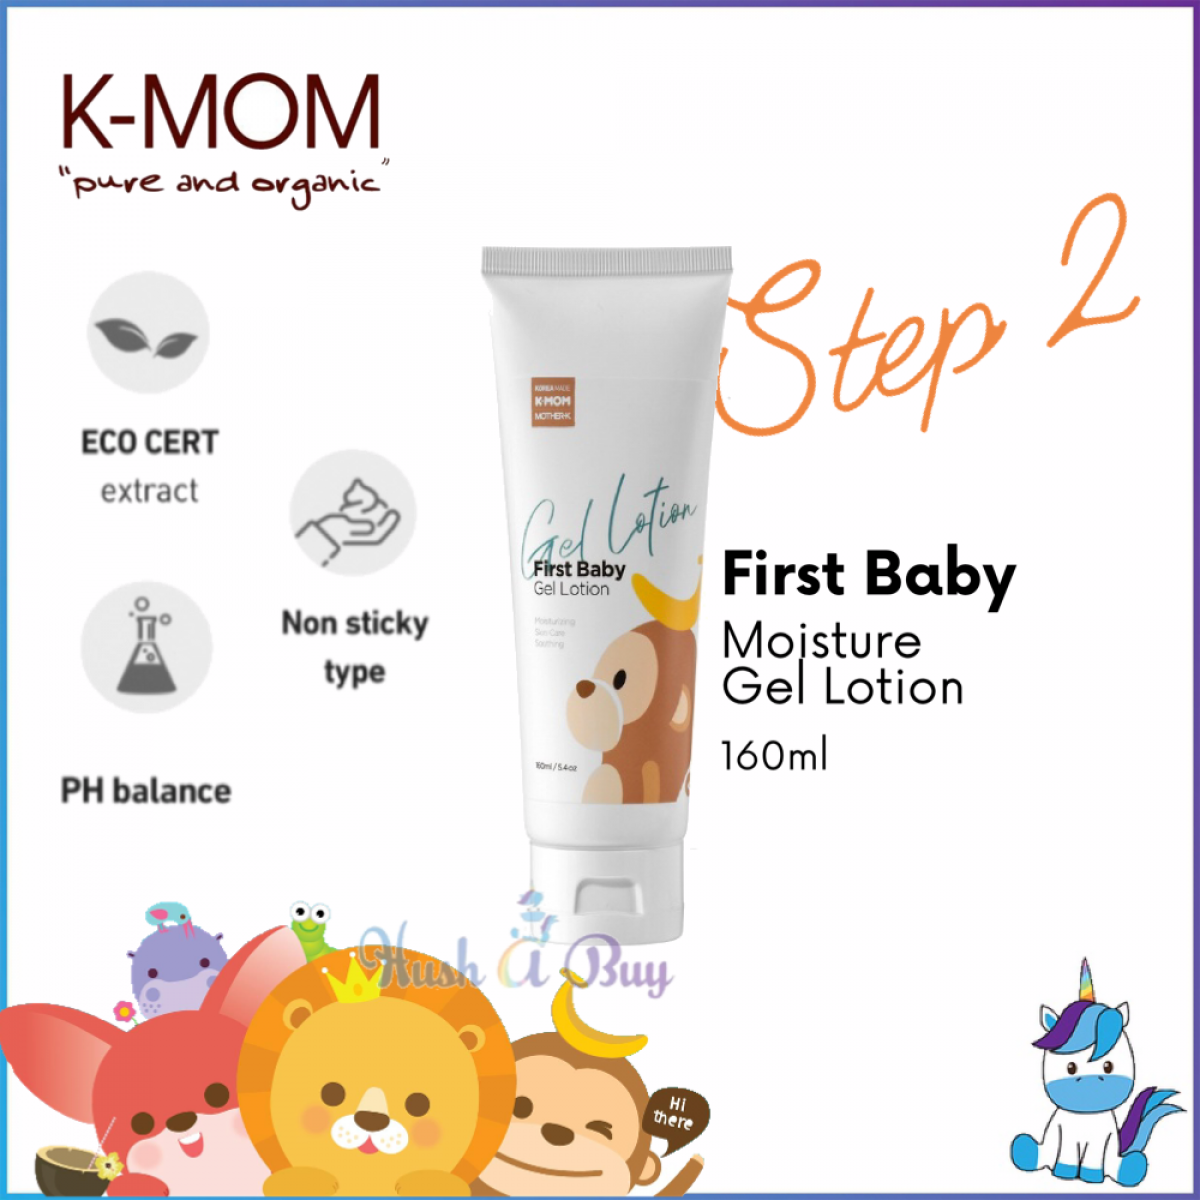 K-Mom First Baby Moisture Gel Lotion 160ml - STEP 2